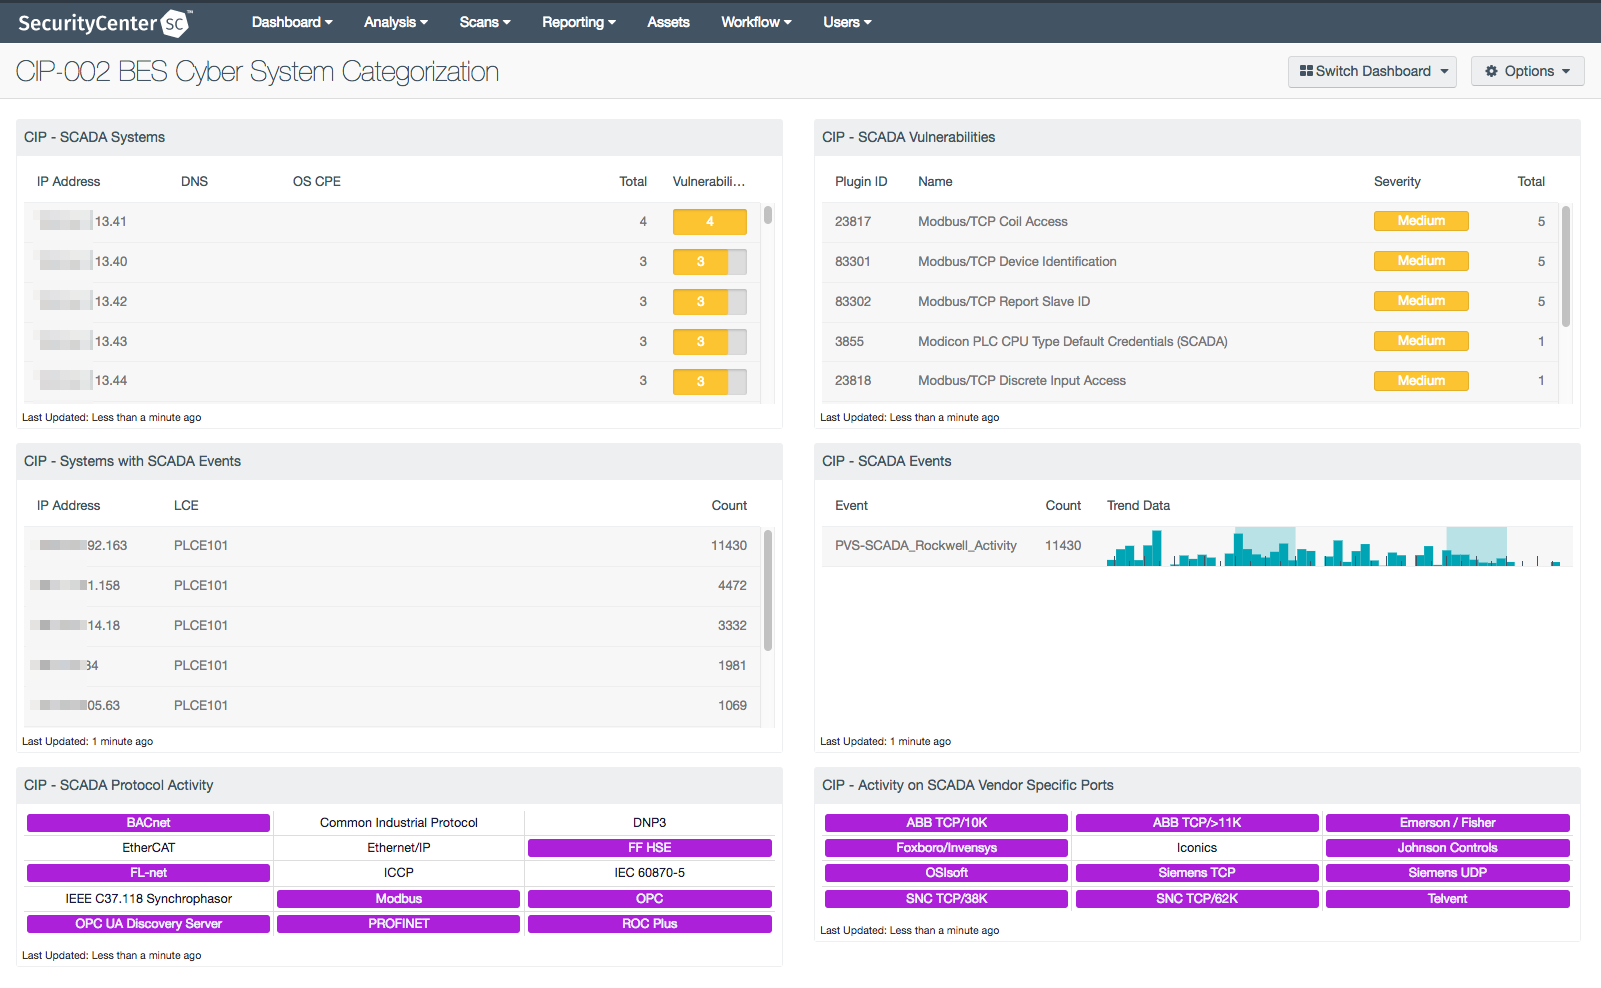 CIP-002 BES Cyber System Categorization dashboard